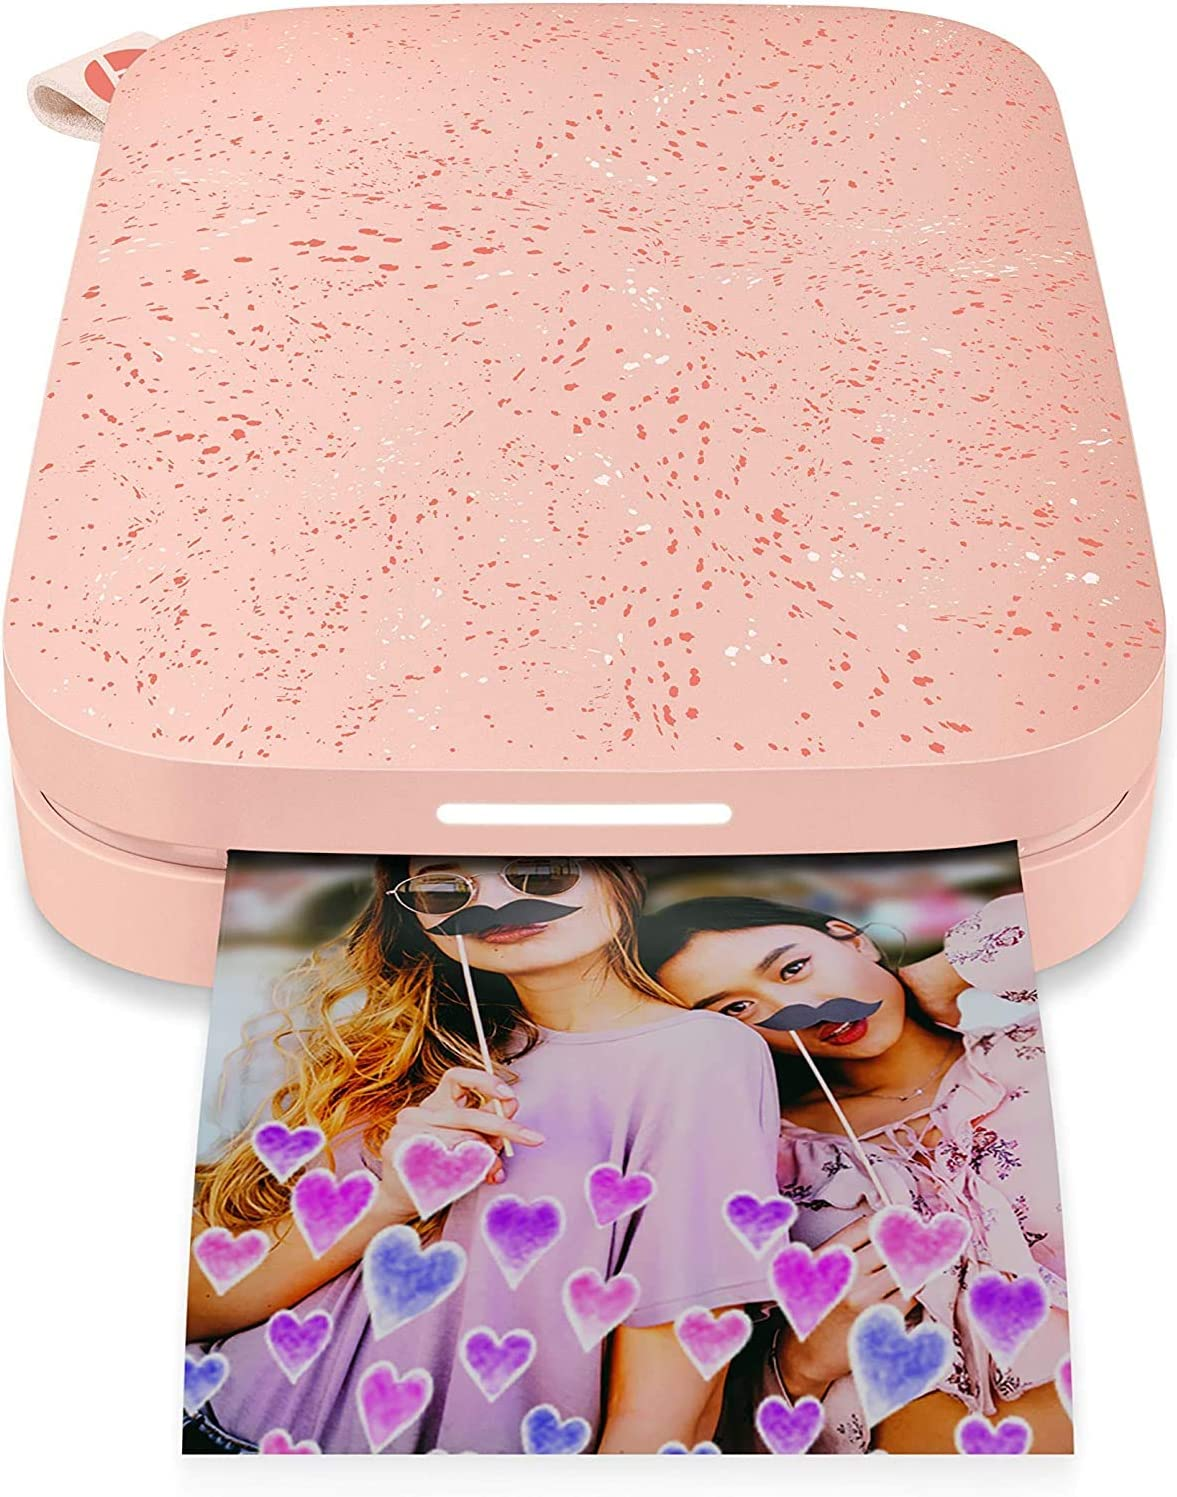 HP Sprocket Portable Photo Printer (2nd Edition) Bundle (Blush)